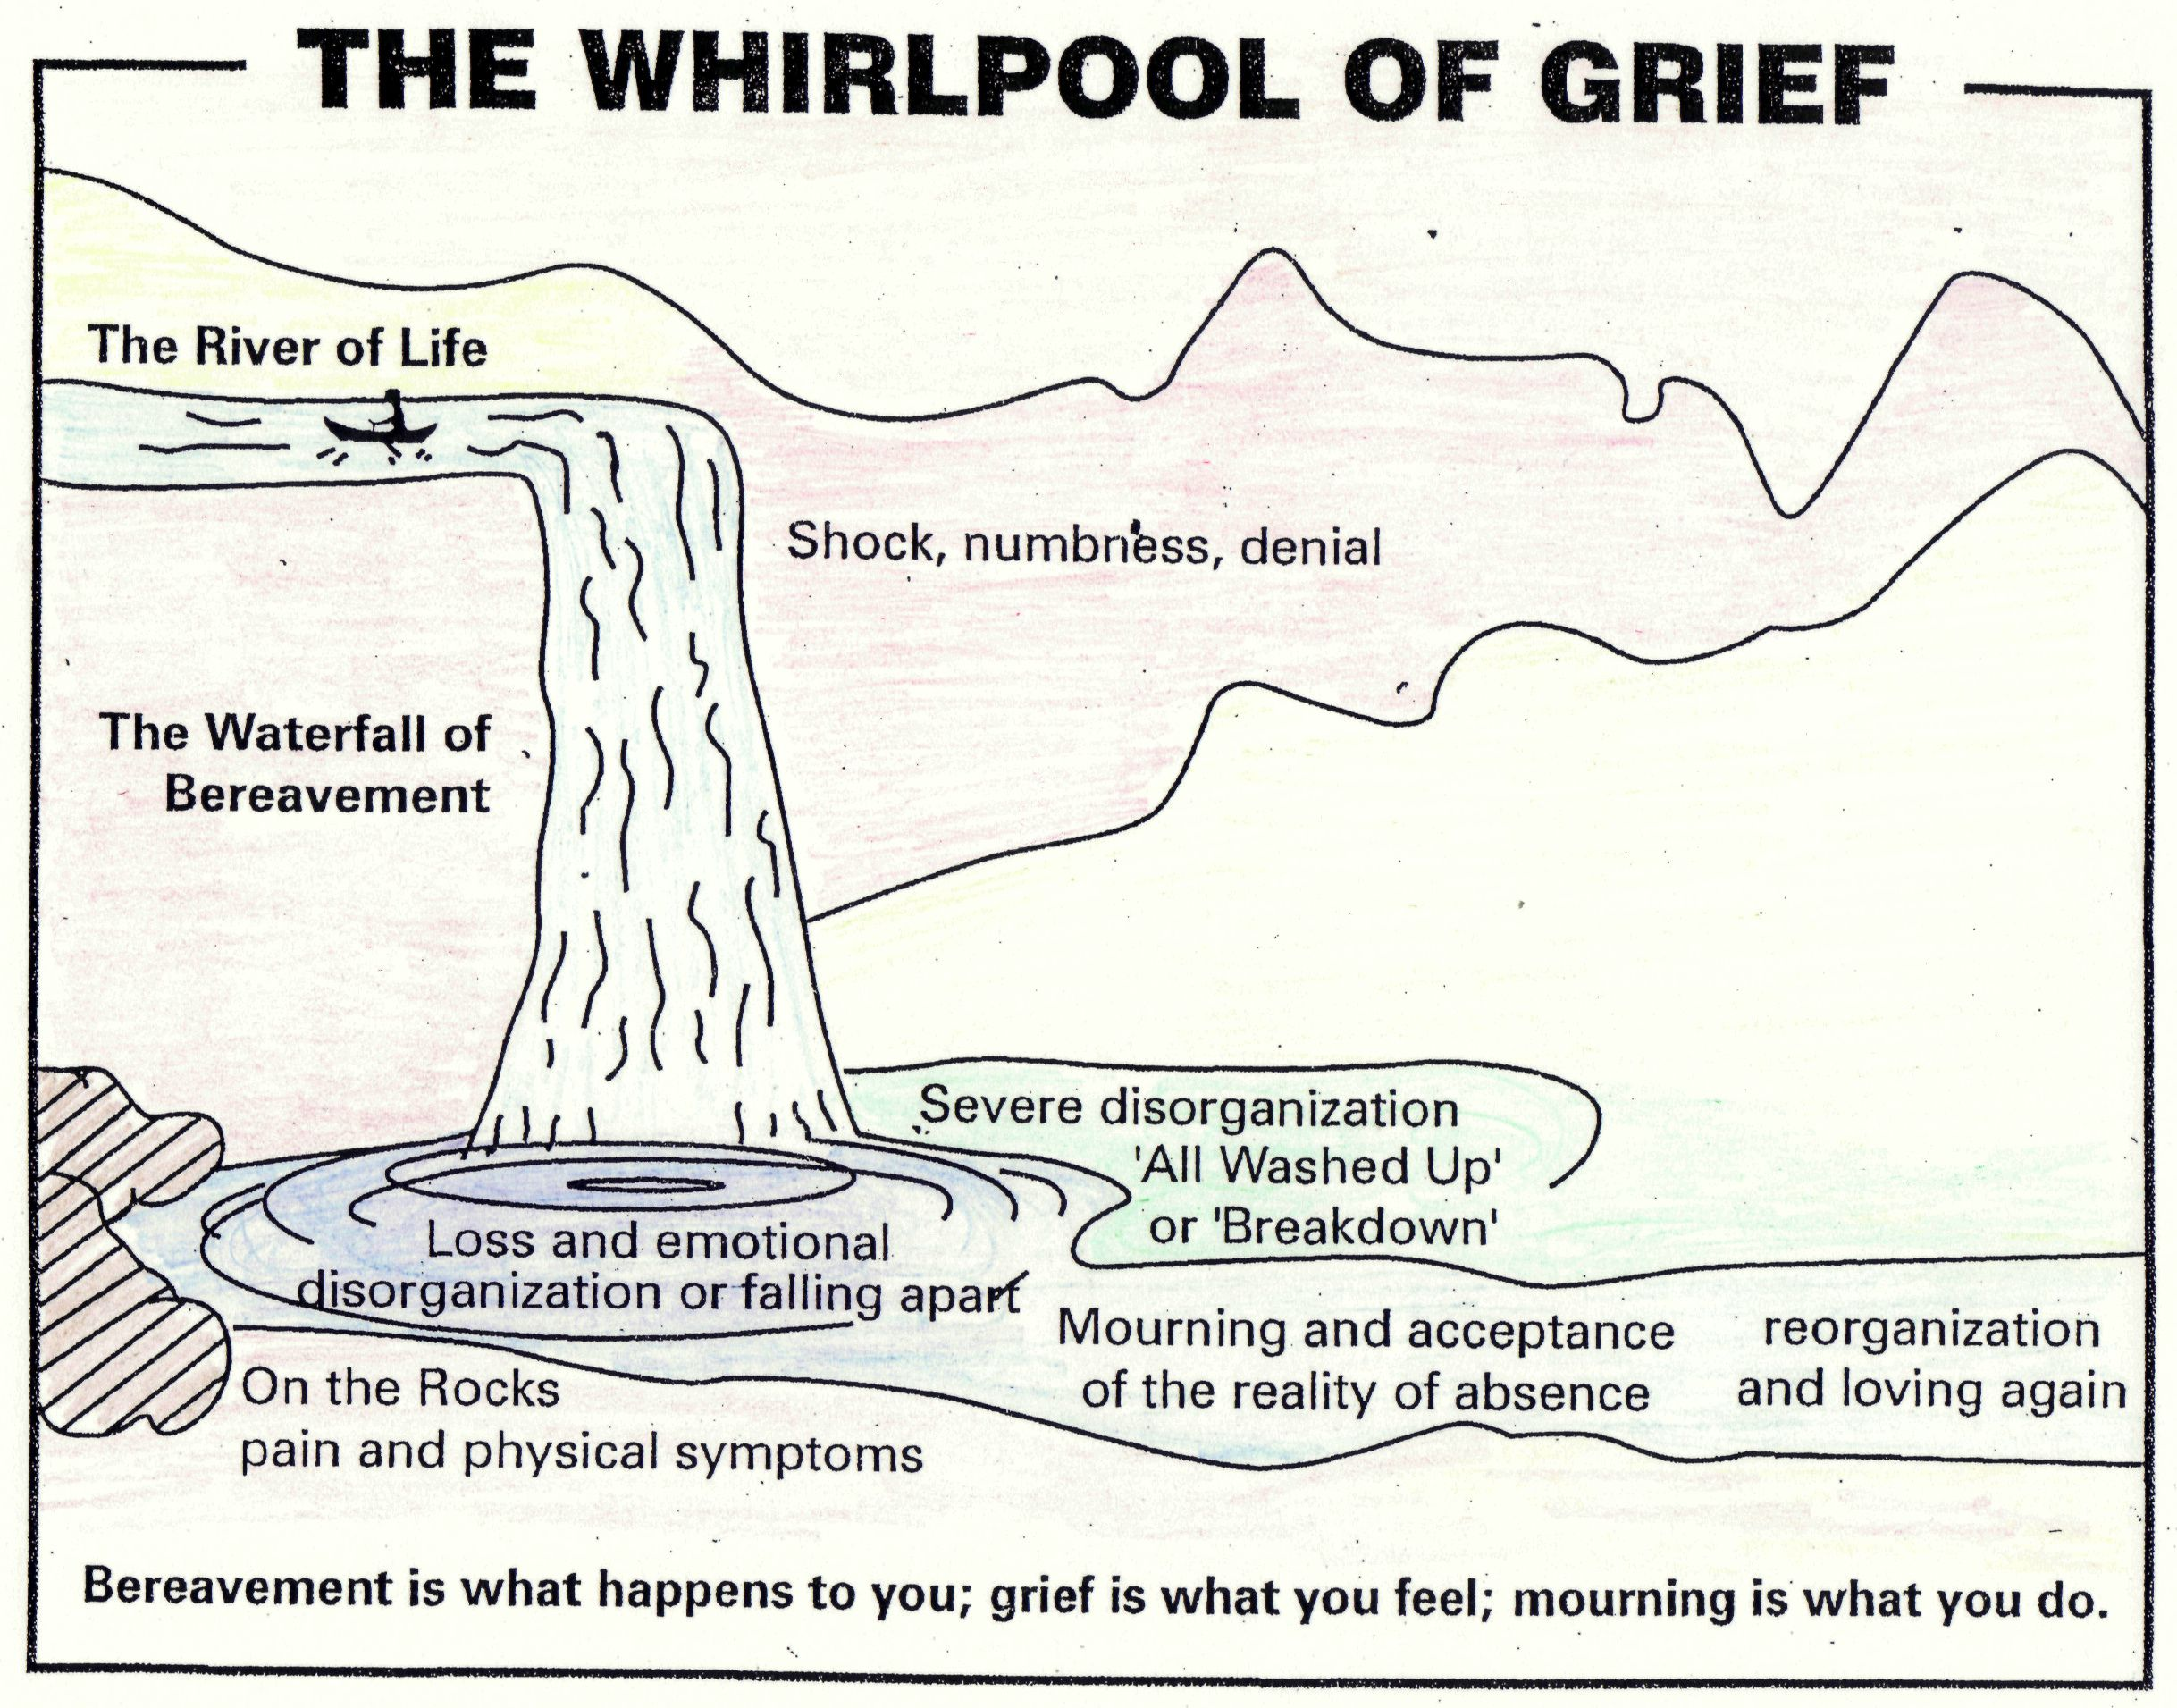 Worksheets Grief And Loss Worksheets the 25 best grief counseling ideas on pinterest activities support groups and child social worker